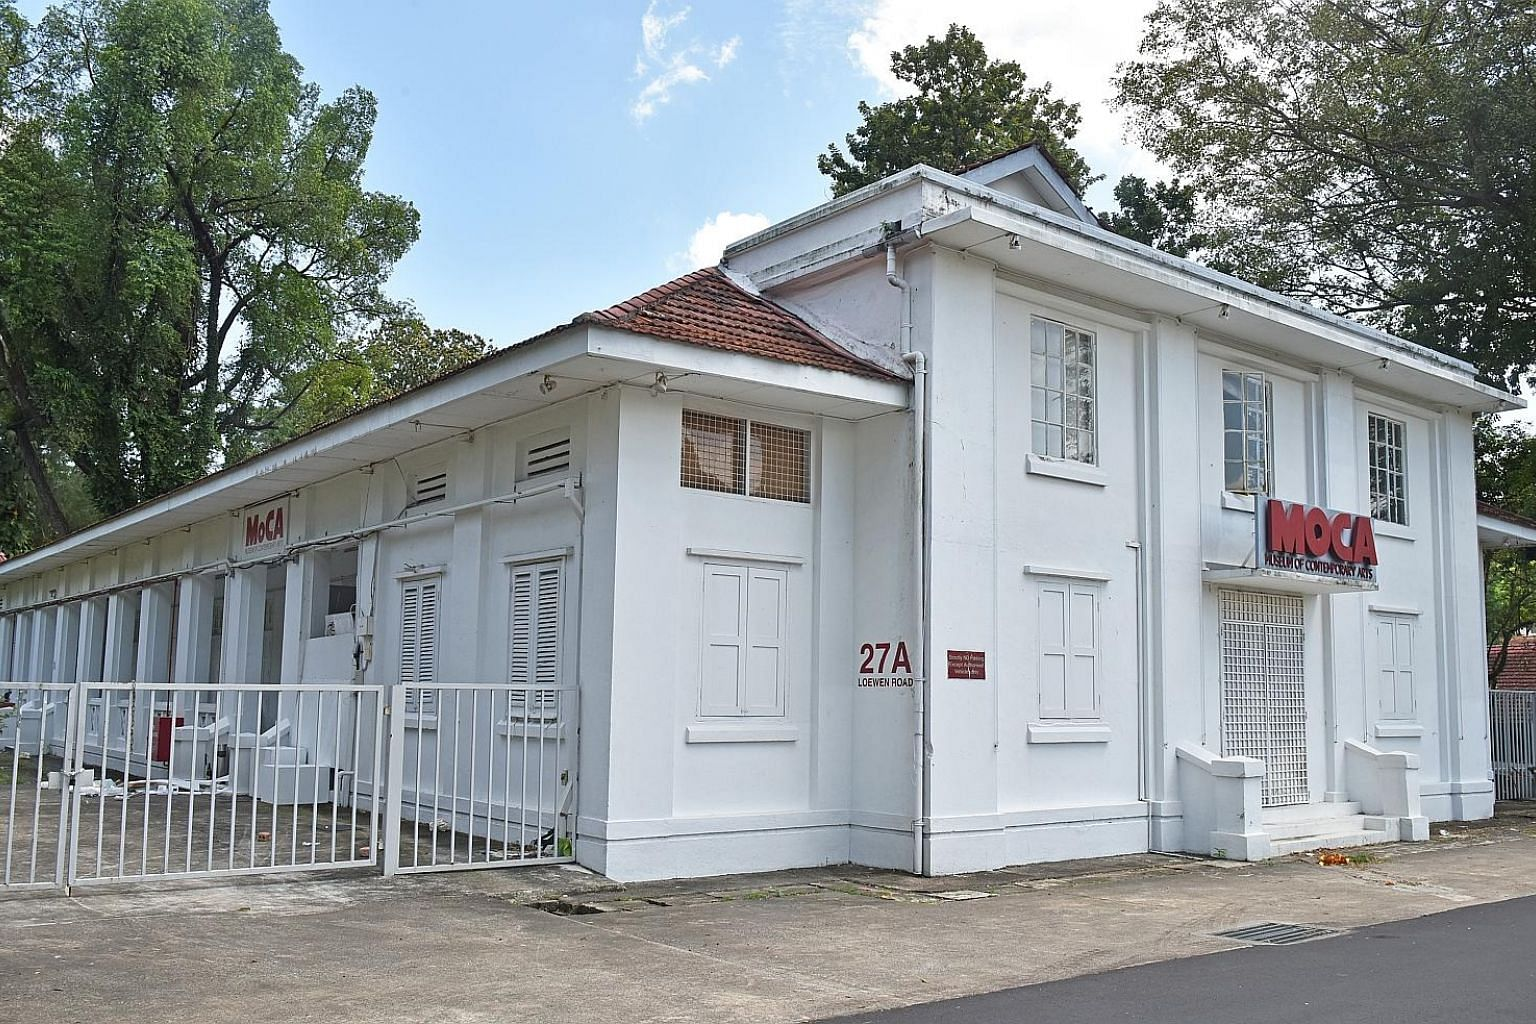 The Museum of Contemporary Arts in Loewen Road, also known as Moca@ Loewen, shut its doors on Monday as its lease had expired and it was not successful in the latest tender, said co-owner Linda Ma.